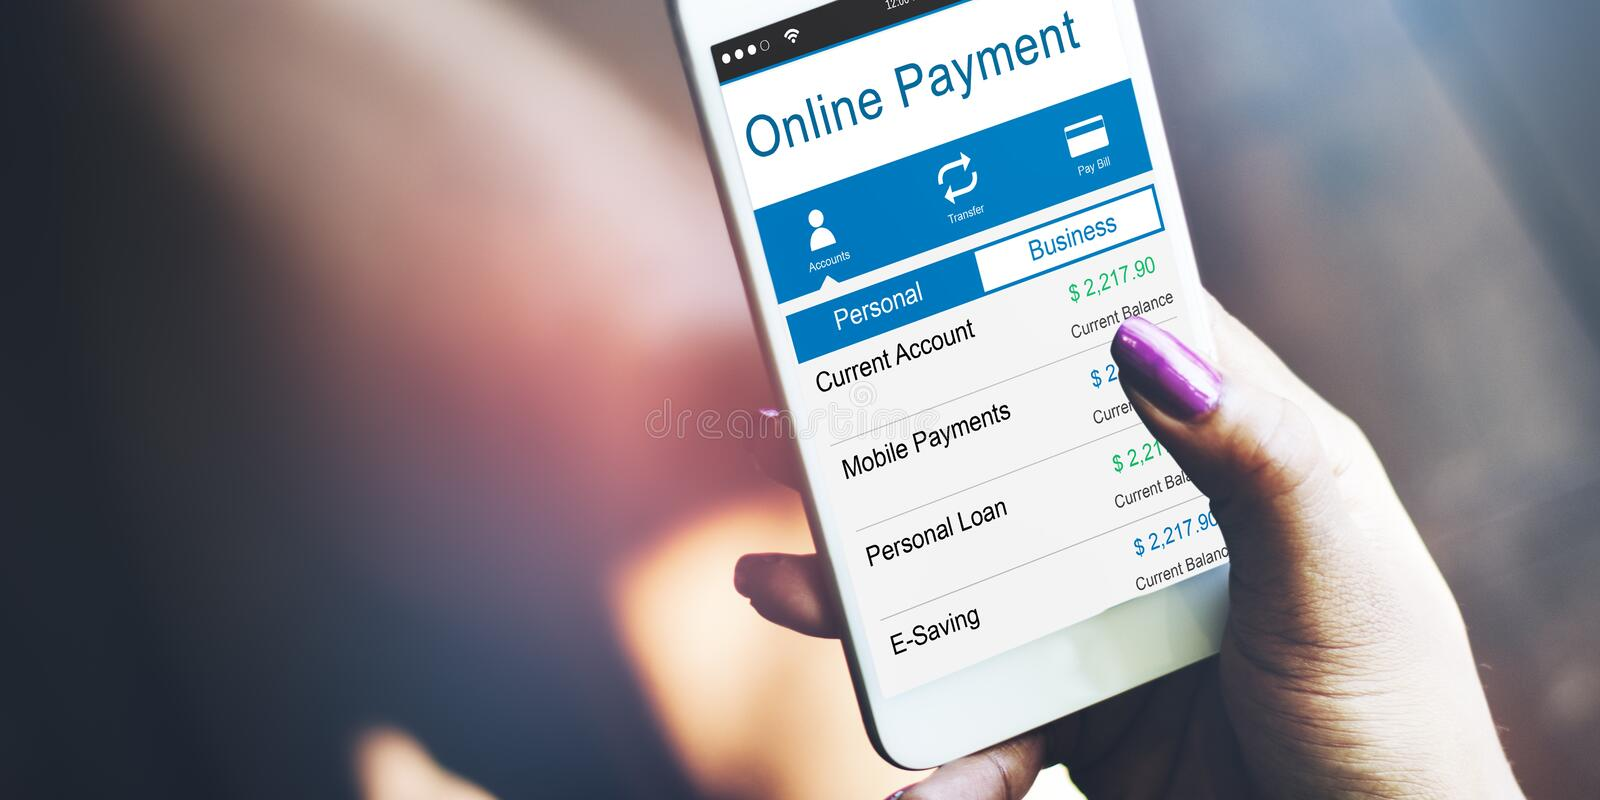 Download Online Payment Purchase Merchandise Buying Paying Concept Stock Photo - Image of financial, accounting: 69202366